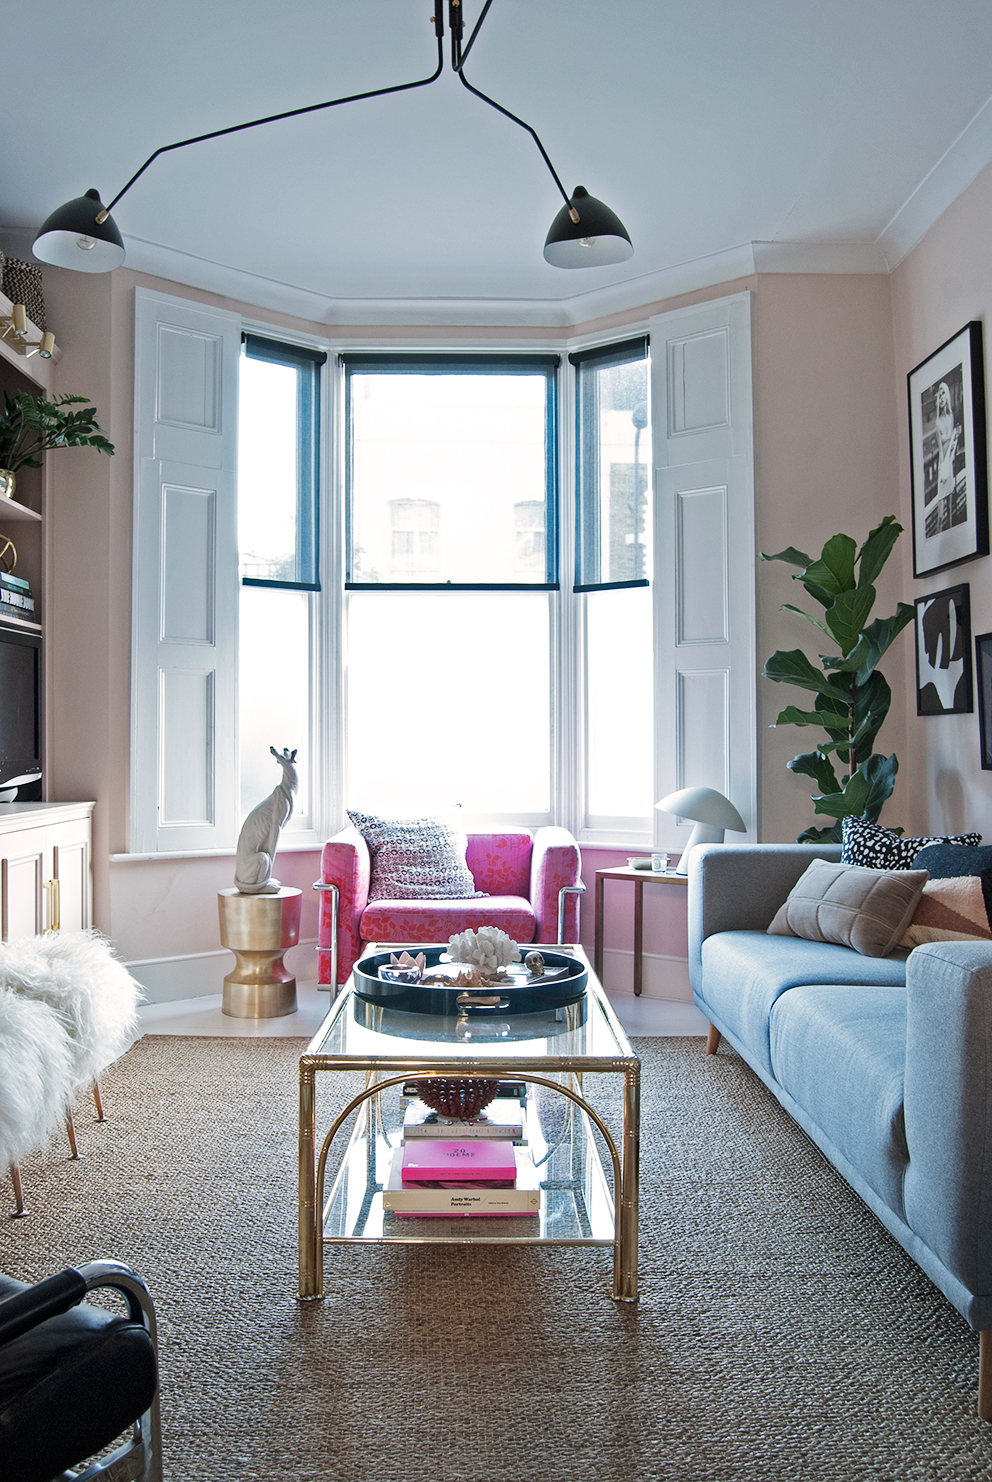 Bianca's living room/Photo: French for Pineapple